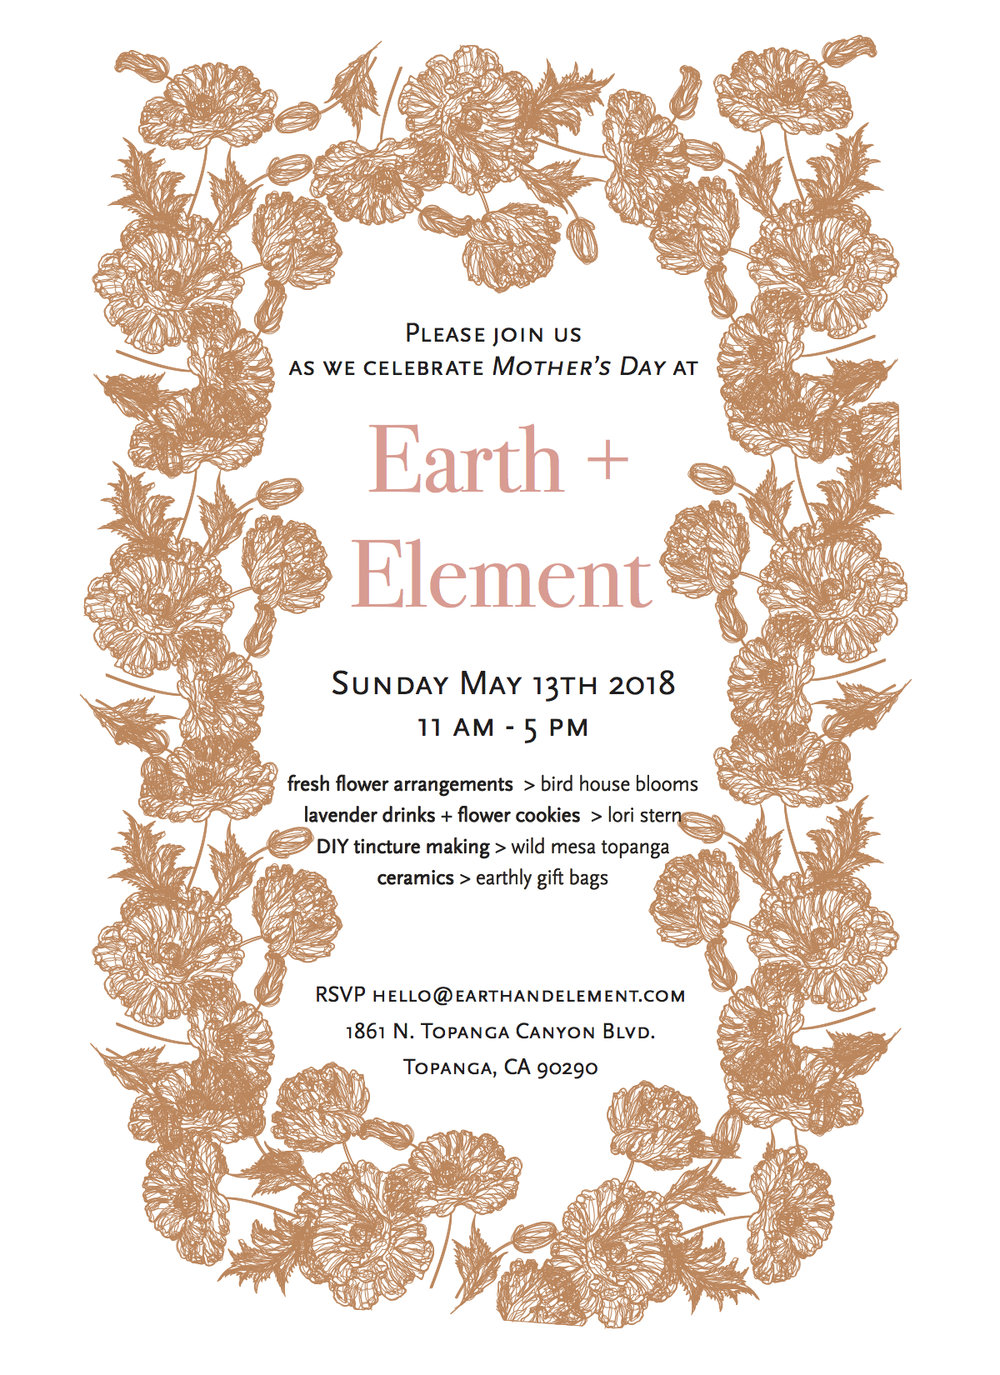 05.01.17 Join us at ceramics shop Earth + Element's Mother's Day event. Meghan of Wild Mesa will have a table set up for you to mix tinctures with the Buddhist deity Tara in mind. Depending where you are at in your life, you can concoct the youthful sensuality of Green Tara or the wise serenity of White Tara. Donation based. The concocting will take place primarily between 11:30 and 1:30p.